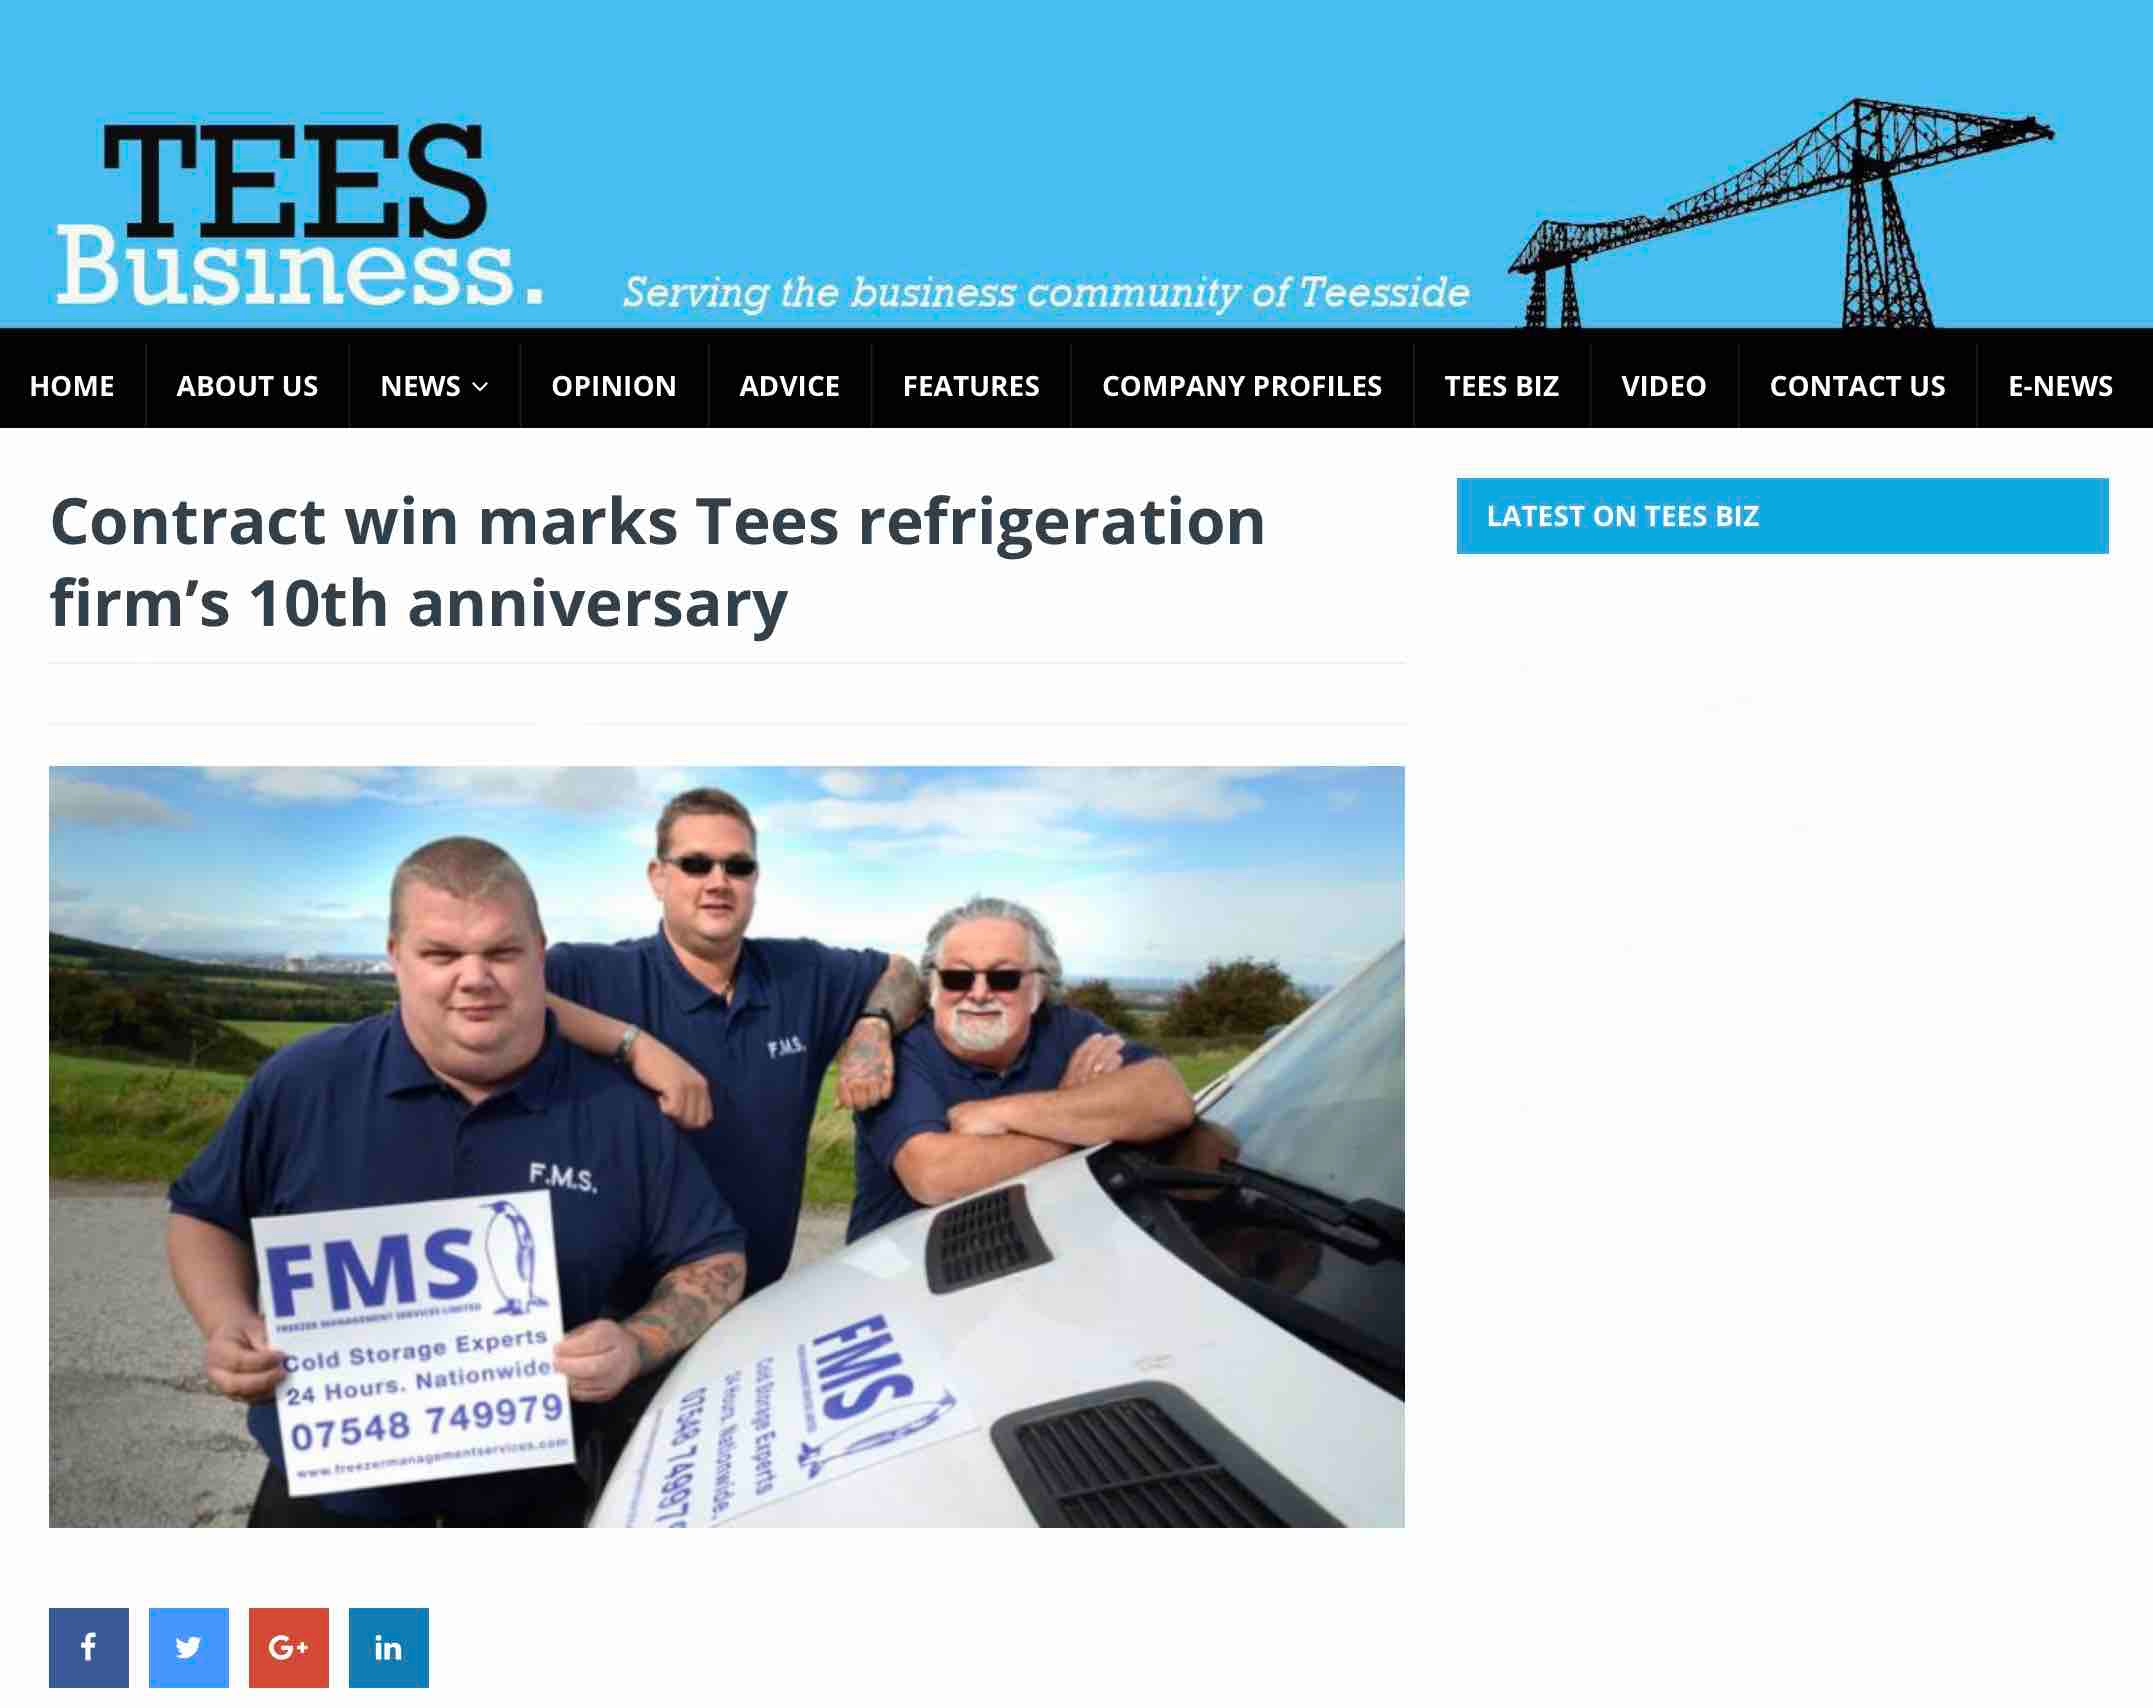 Press release Tees Business website promoting FMS 10th birthday